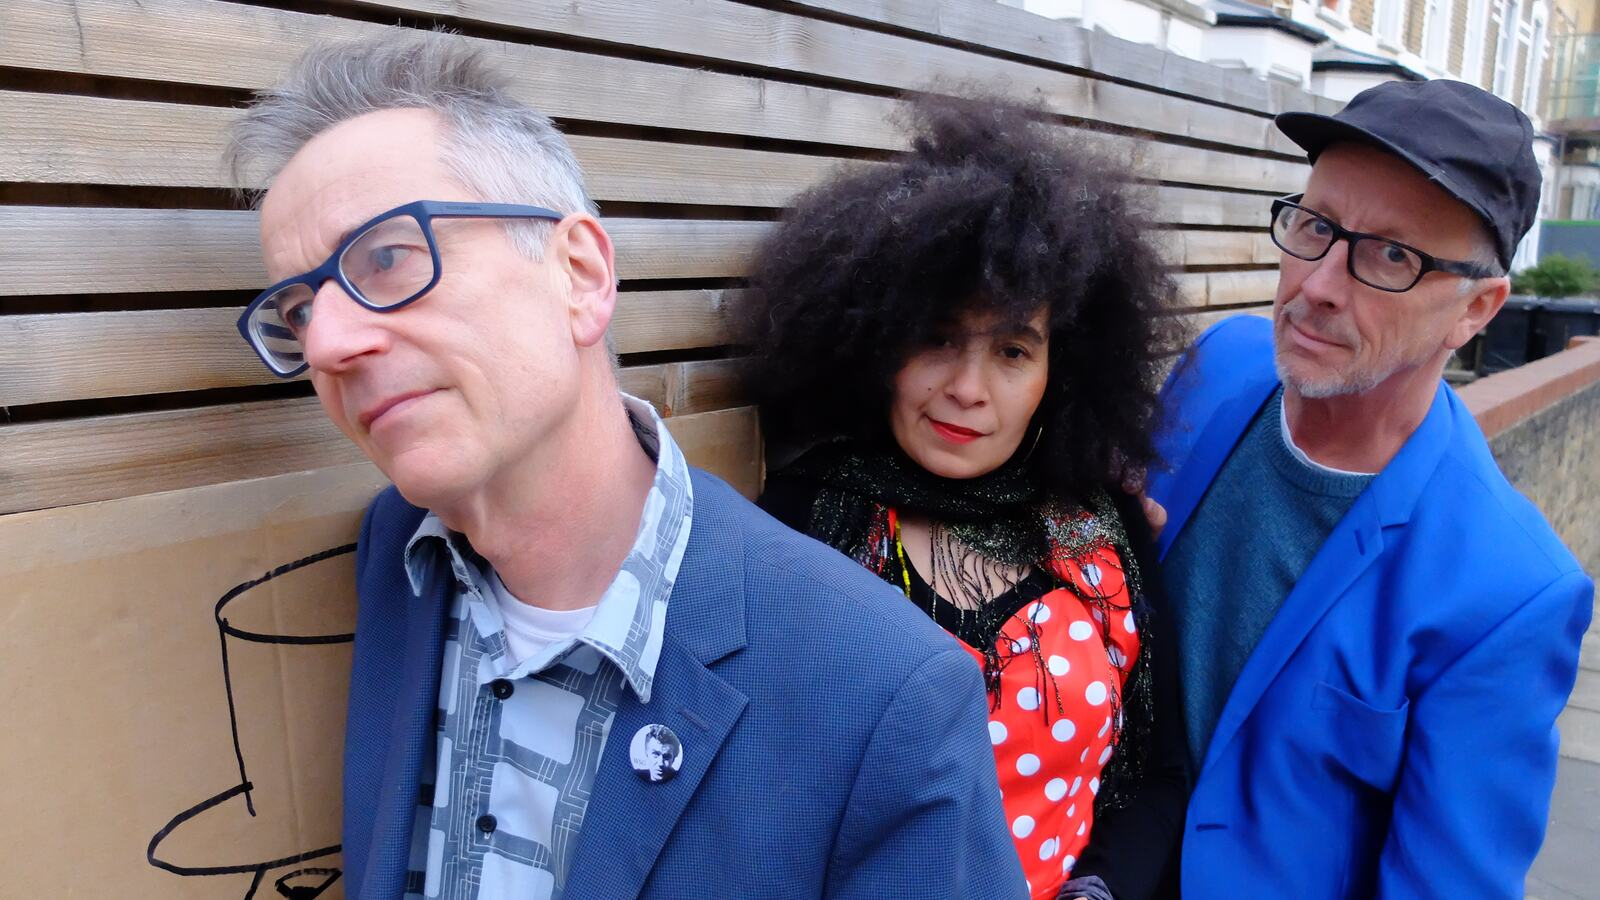 John Hegley, Cina Aissa and Mike Tomes leaning against a wall